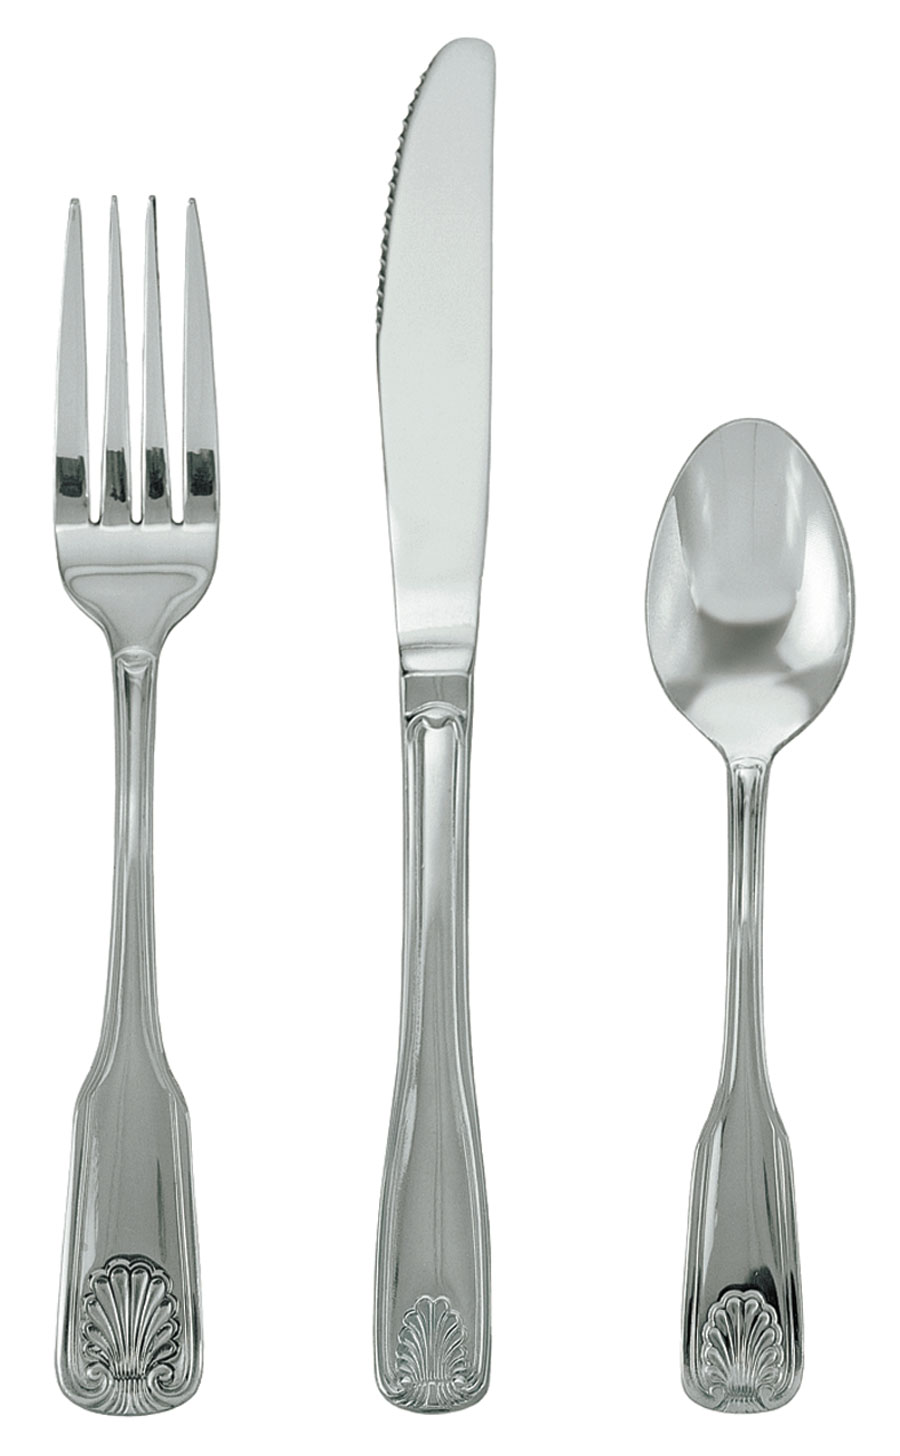 Update International SH-506-N Shelley Salad Fork - 1 doz